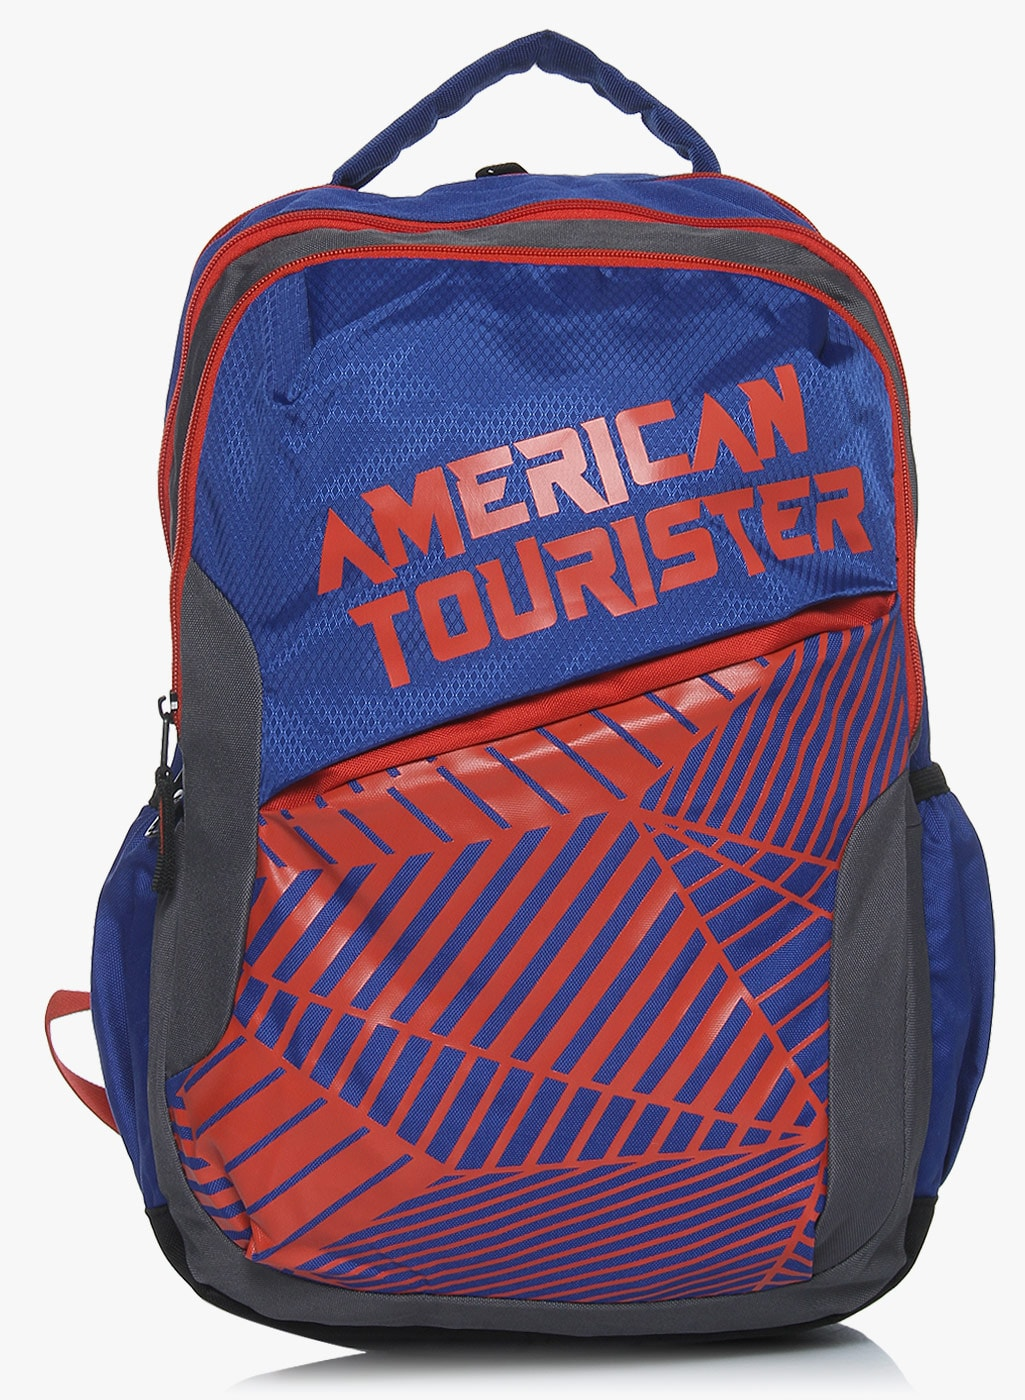 american tourister bag buy from american tourister myntra